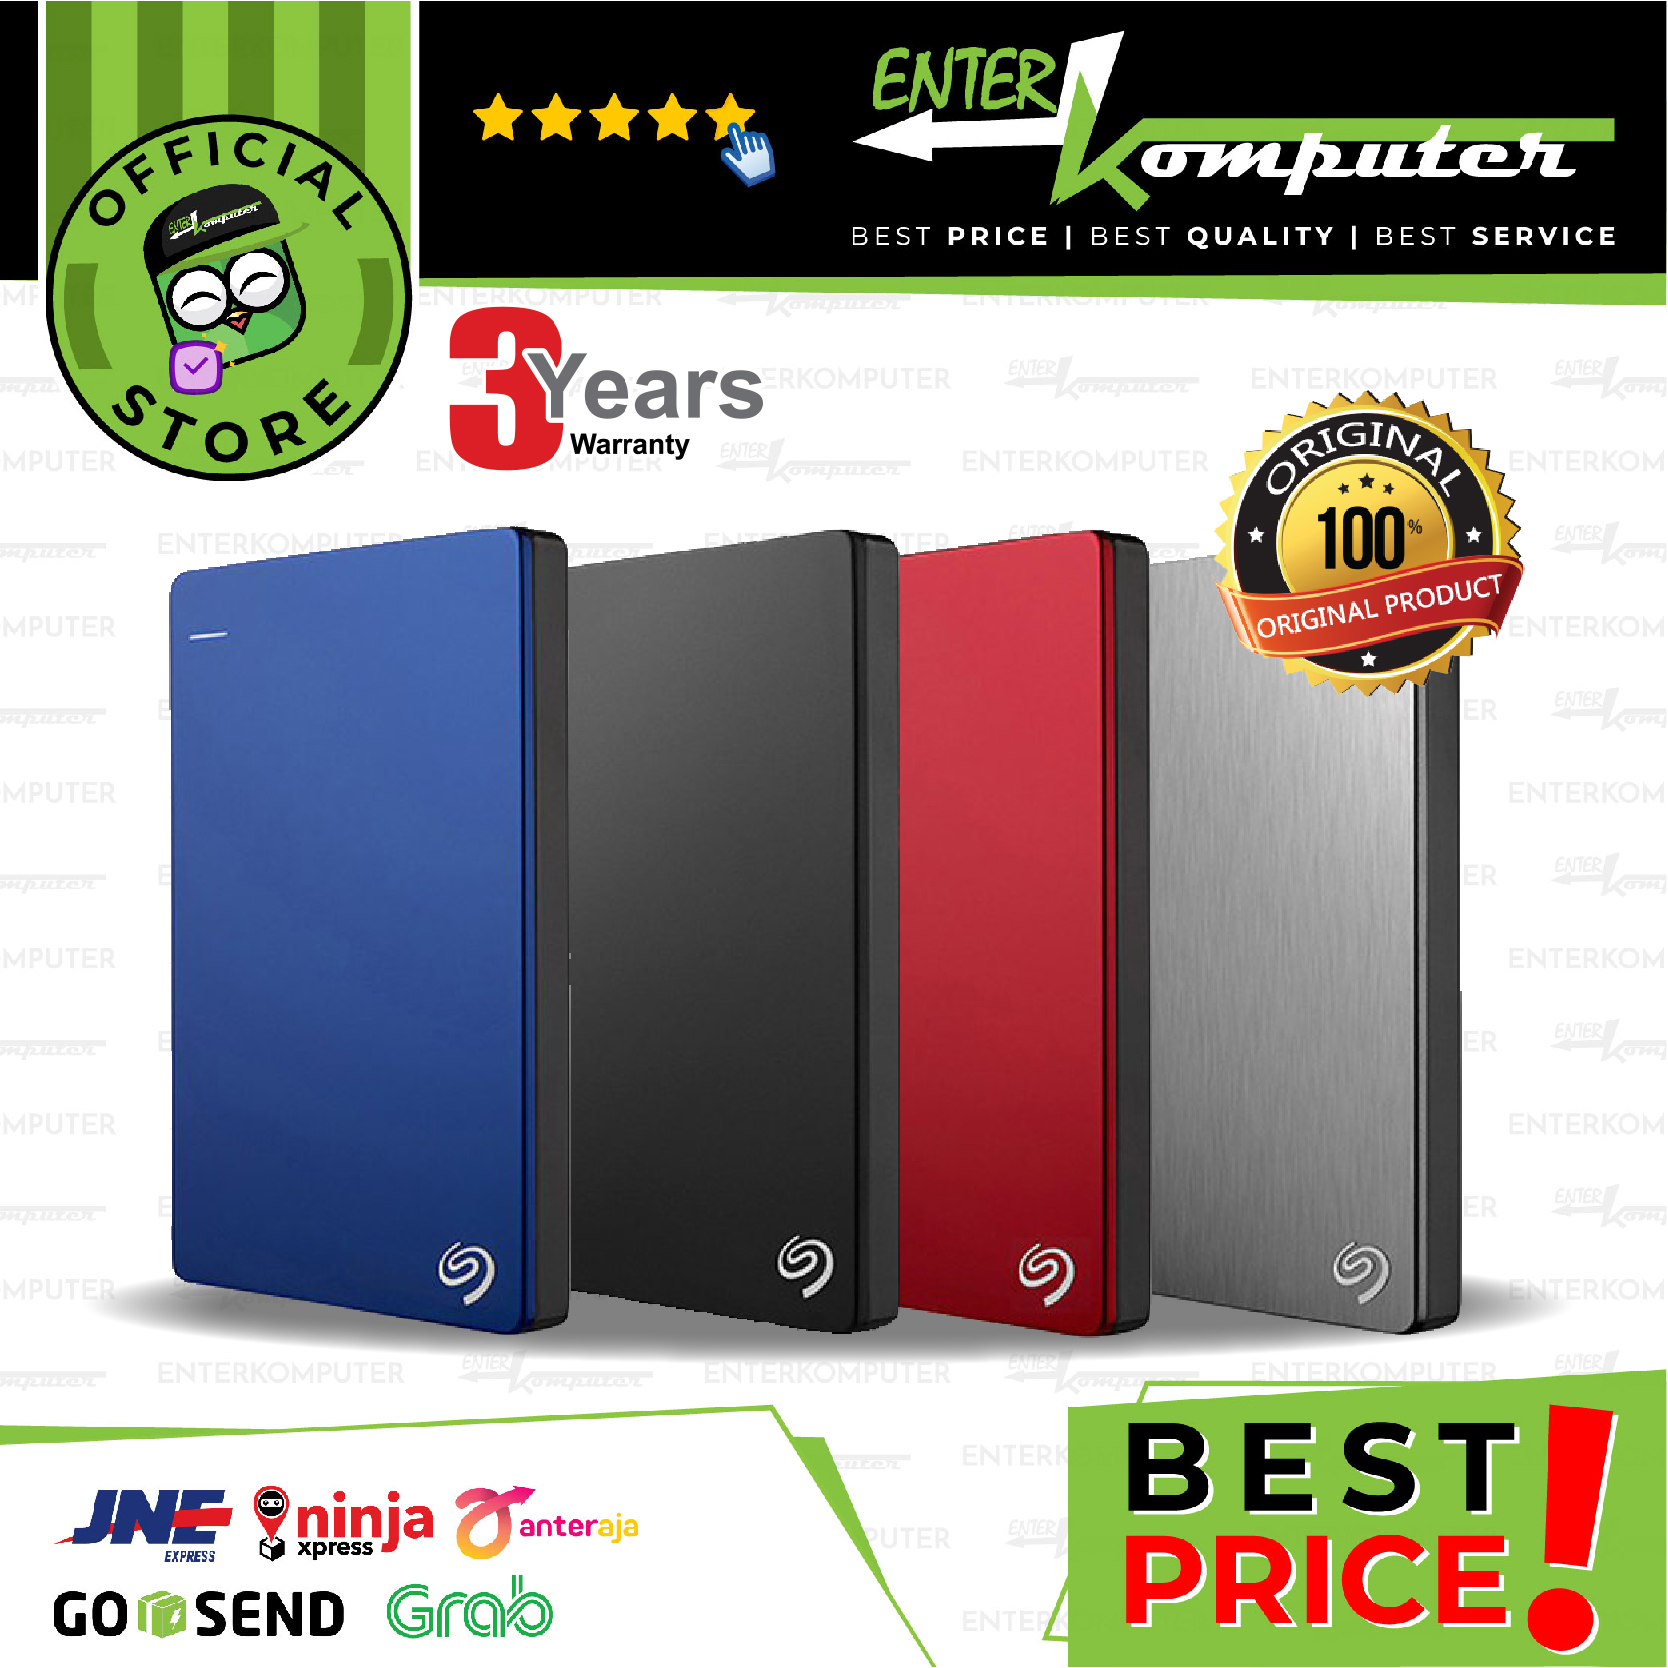 Seagate Backup Plus SLIM Edition 1TB USB 3.0